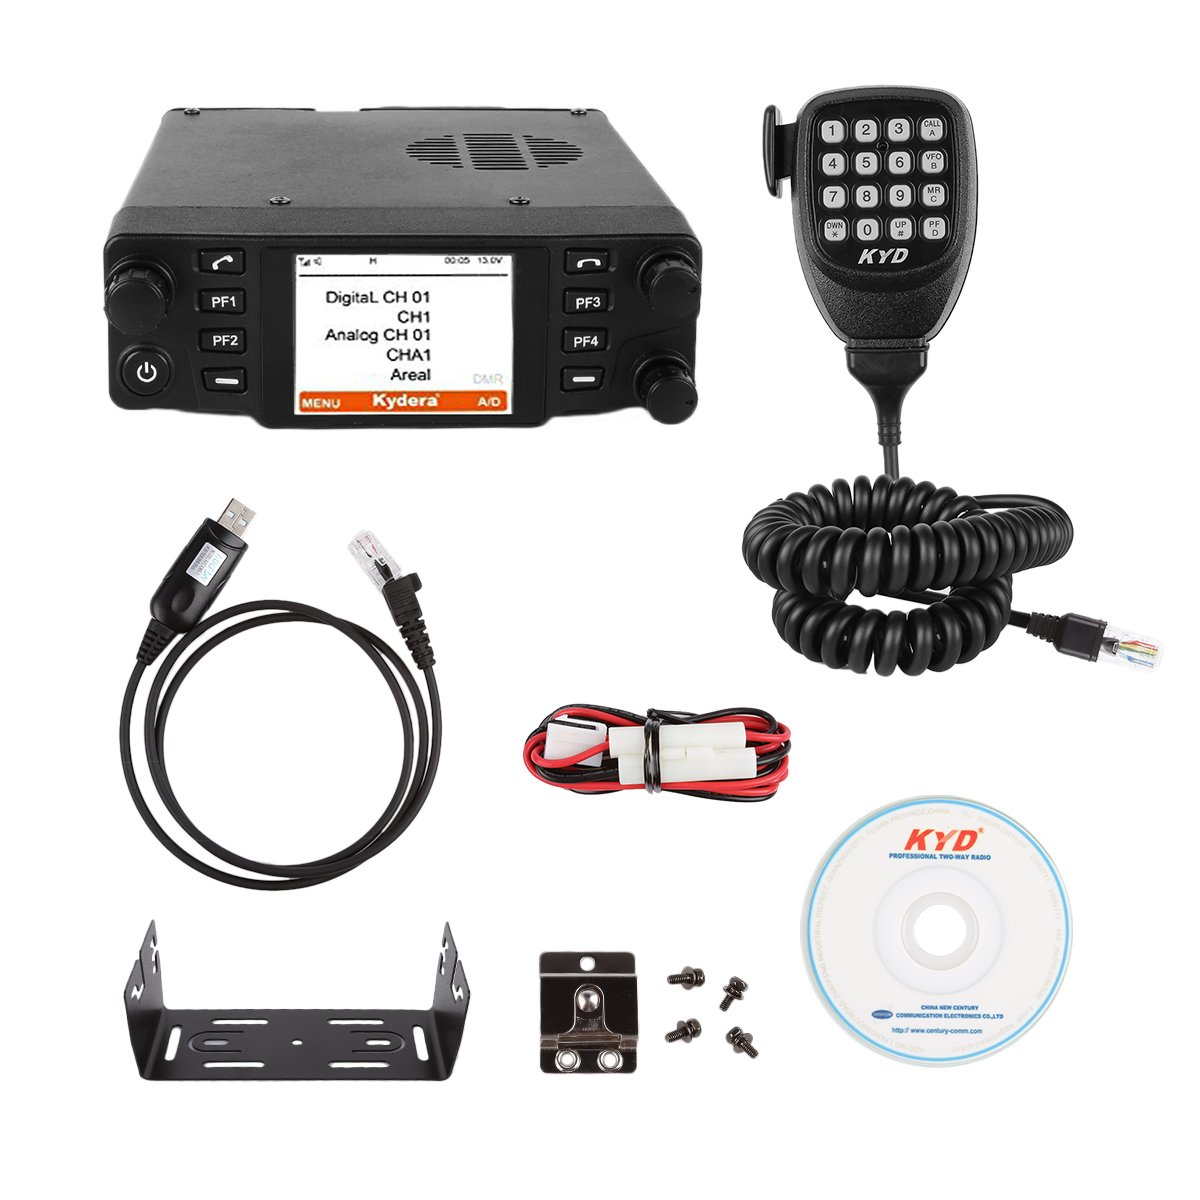 Kydera CDM-550H DMR 400-430 440-480Mhz UHF Large LCF Display 40W 25KM Digital Car Radio Ham Transceiver, with Programming Cable & Software by KYDERA (Image #5)